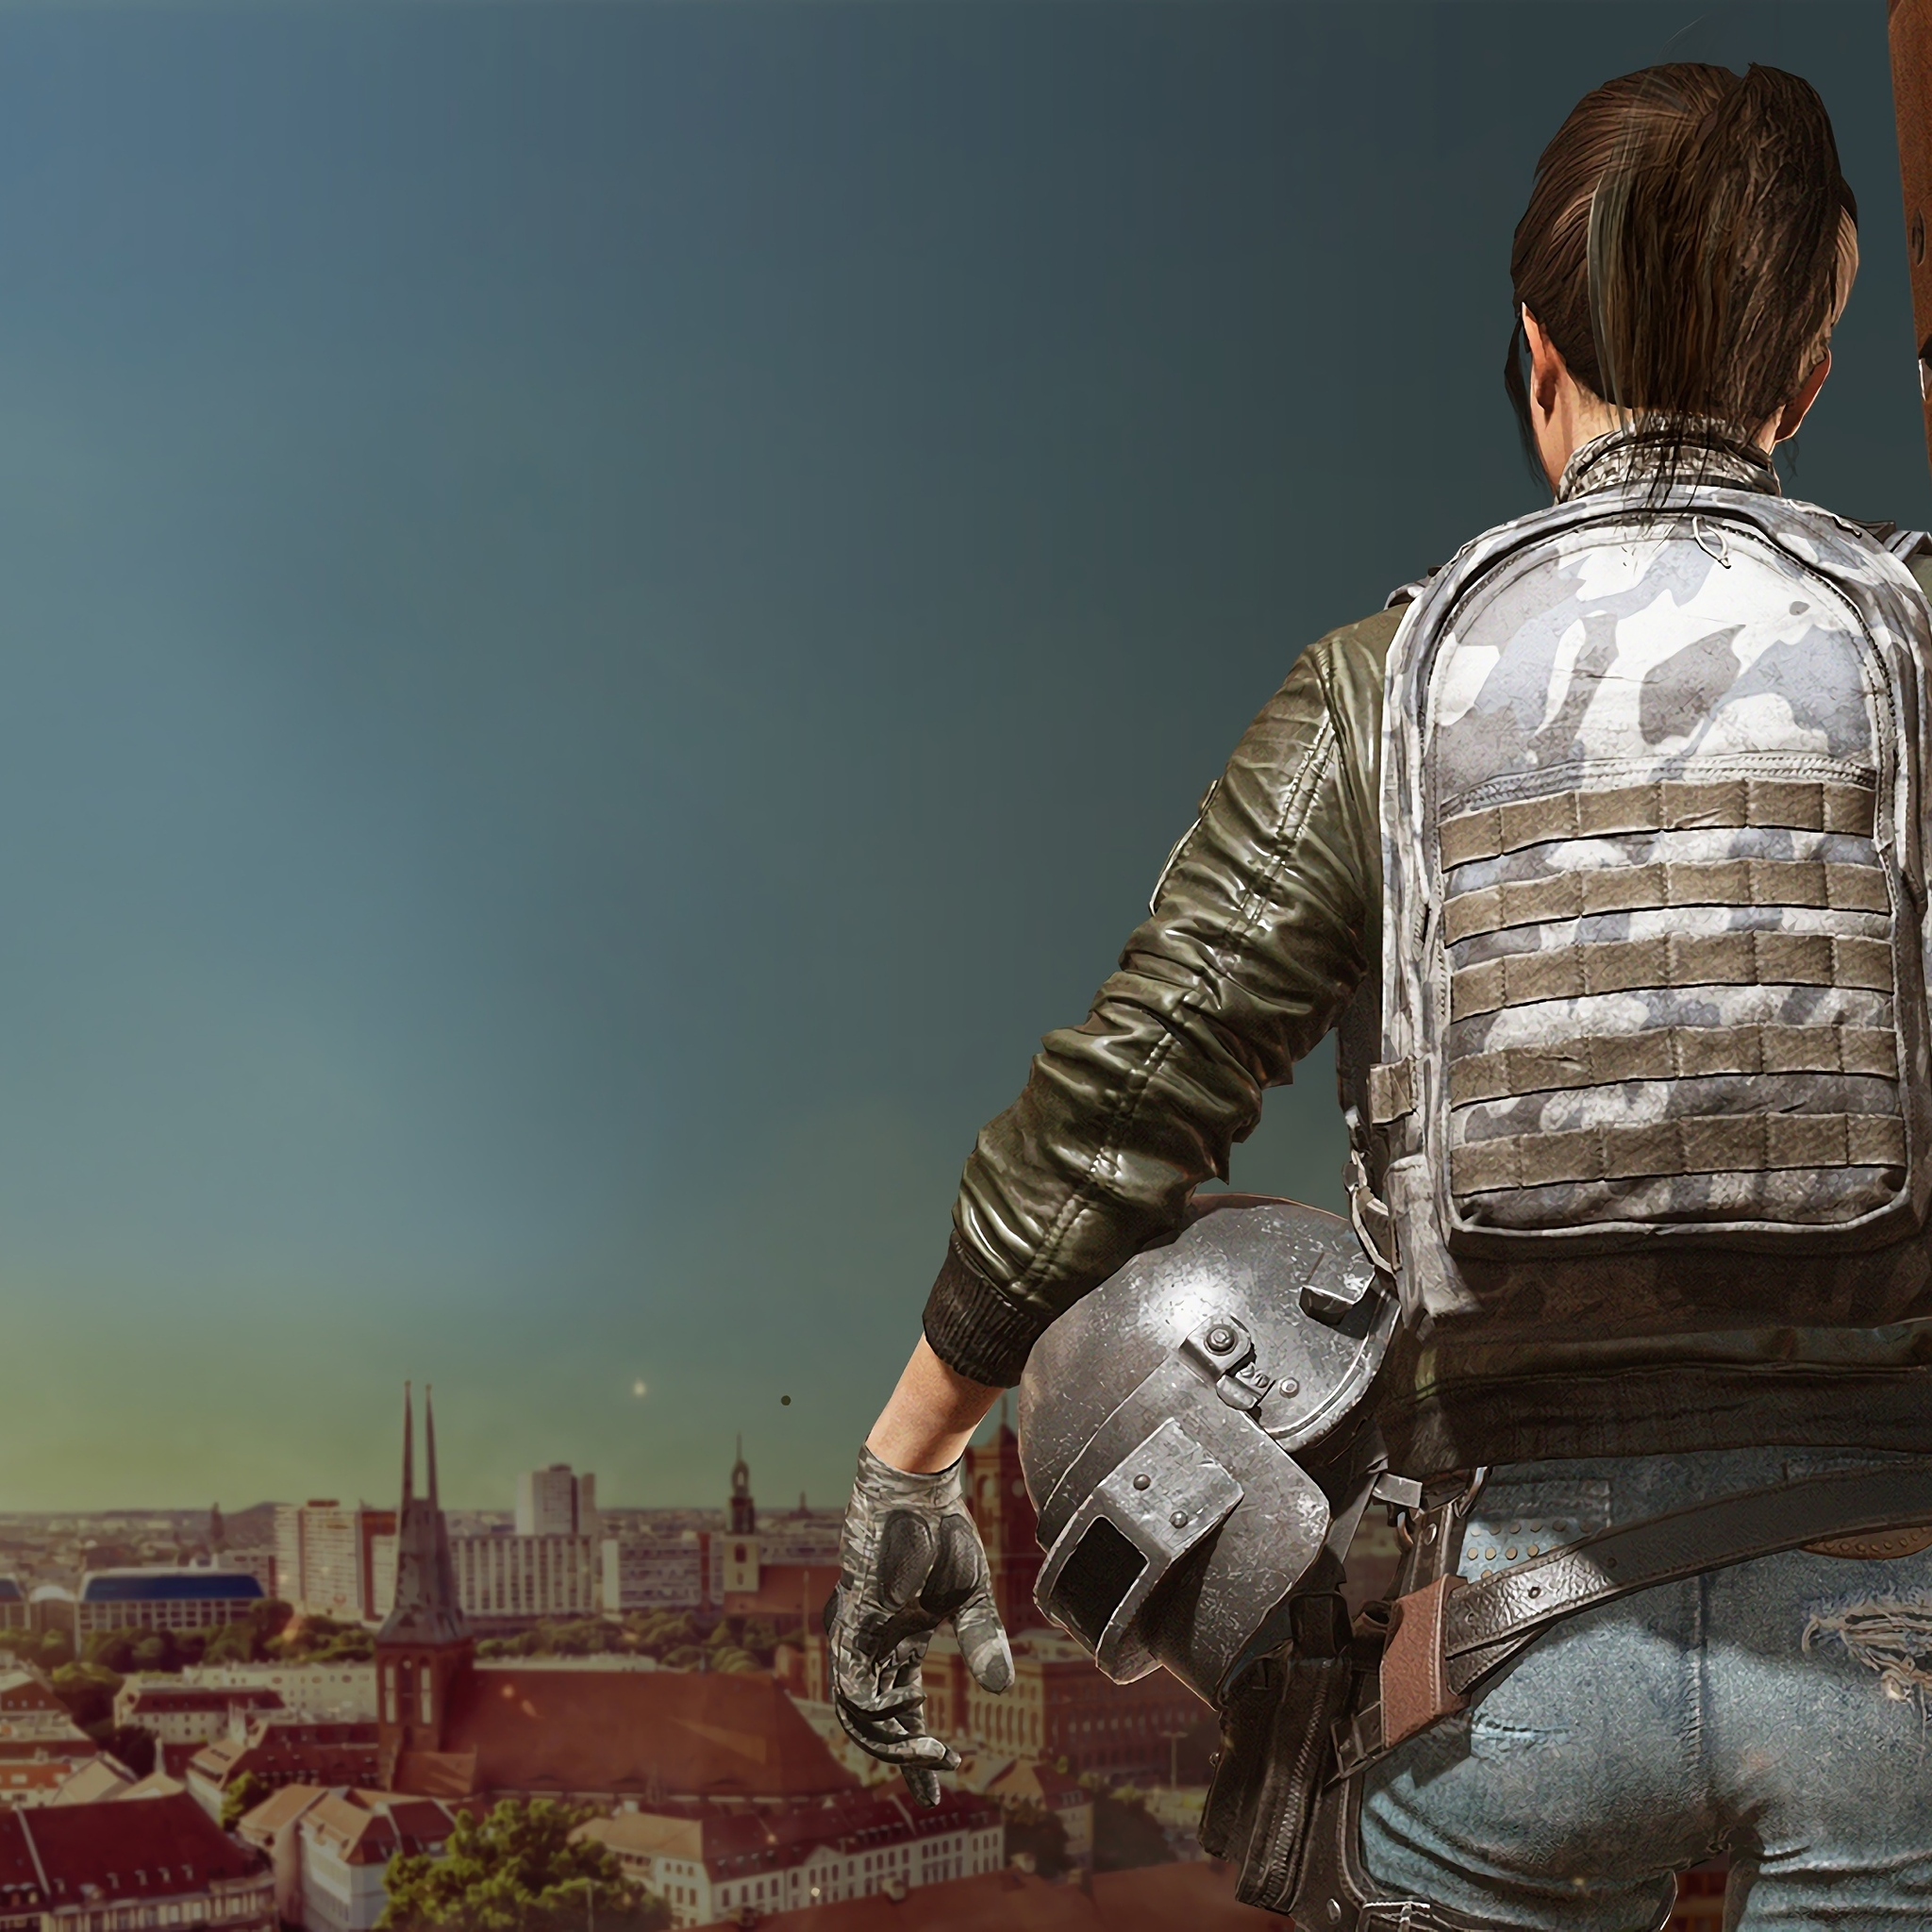 2048x2048 Game Girl Pubg 4k Ipad Air Hd 4k Wallpapers Images